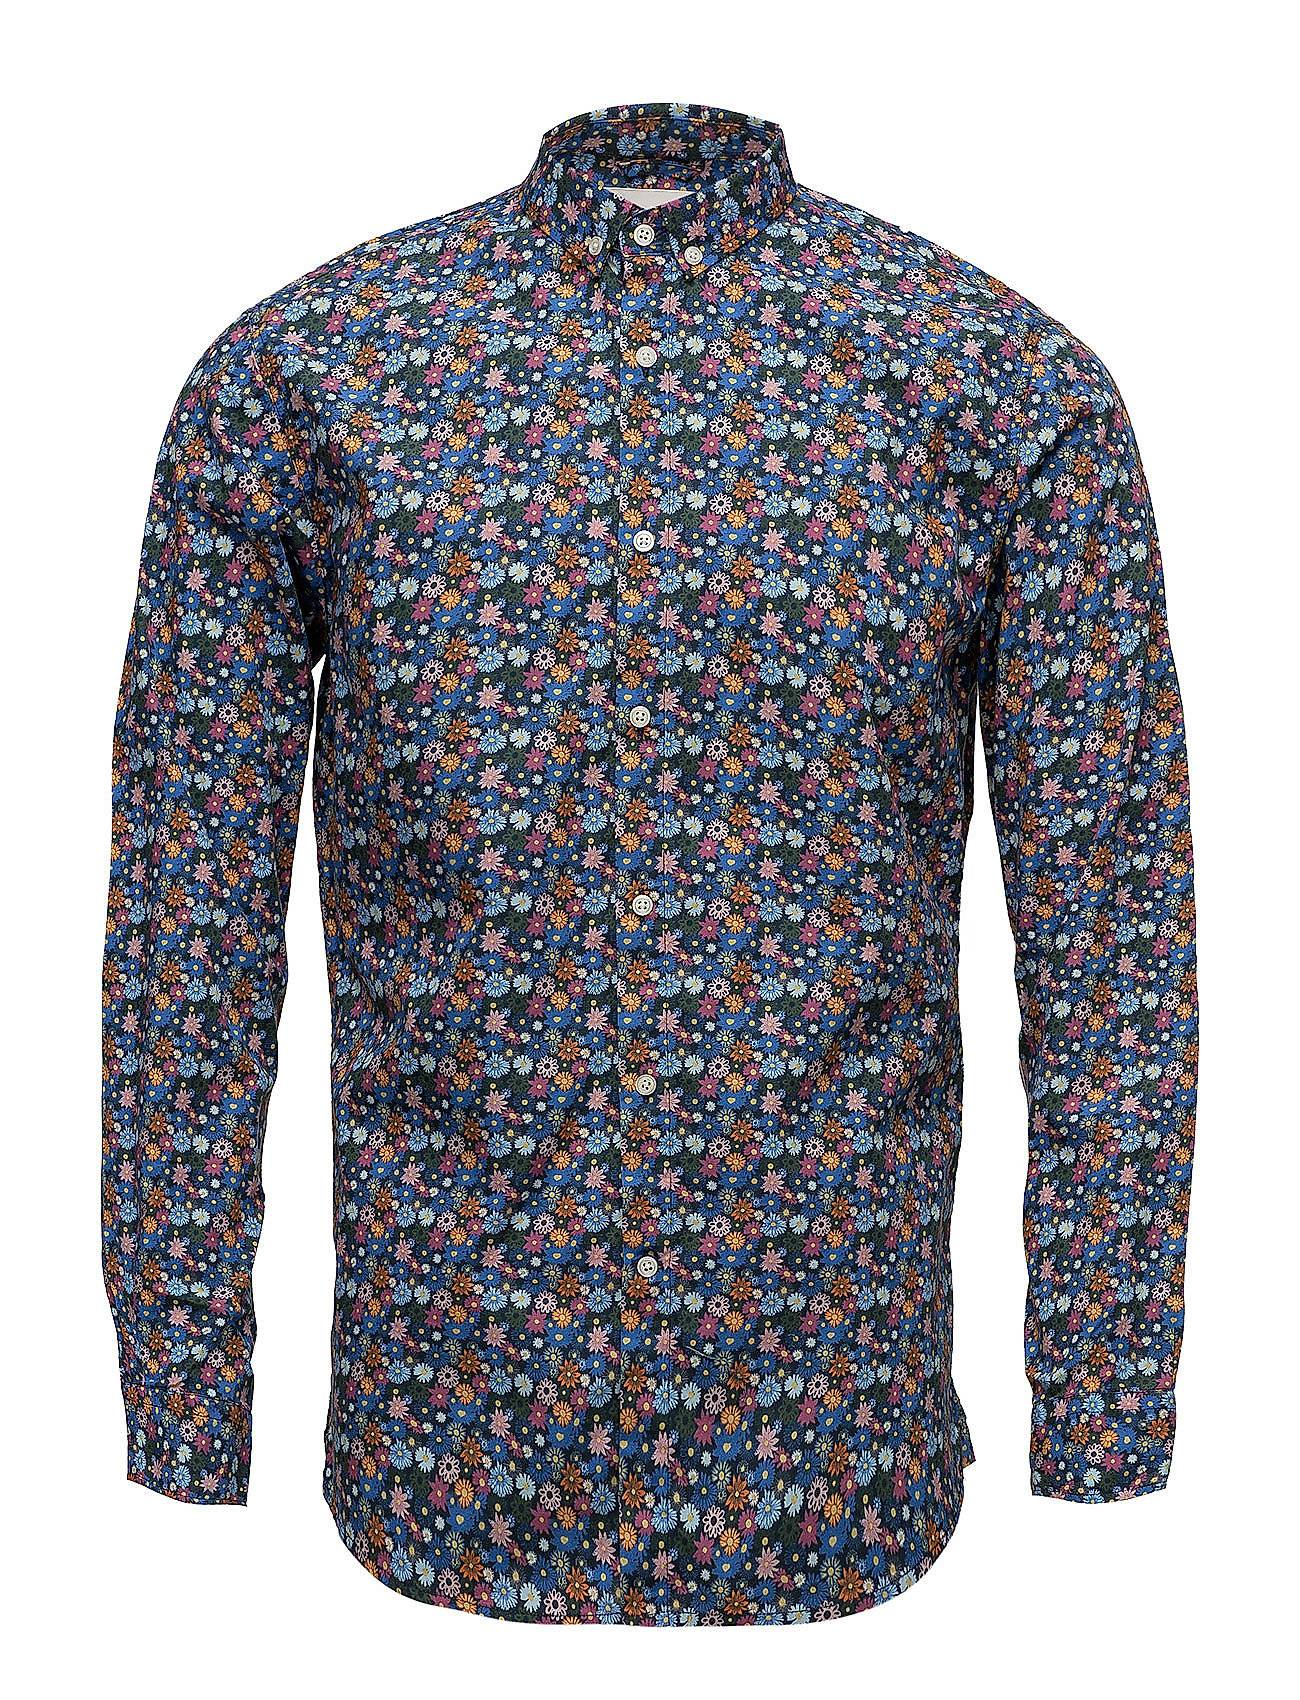 Knowledge Cotton Apparel All Over Flower Printed Shirt